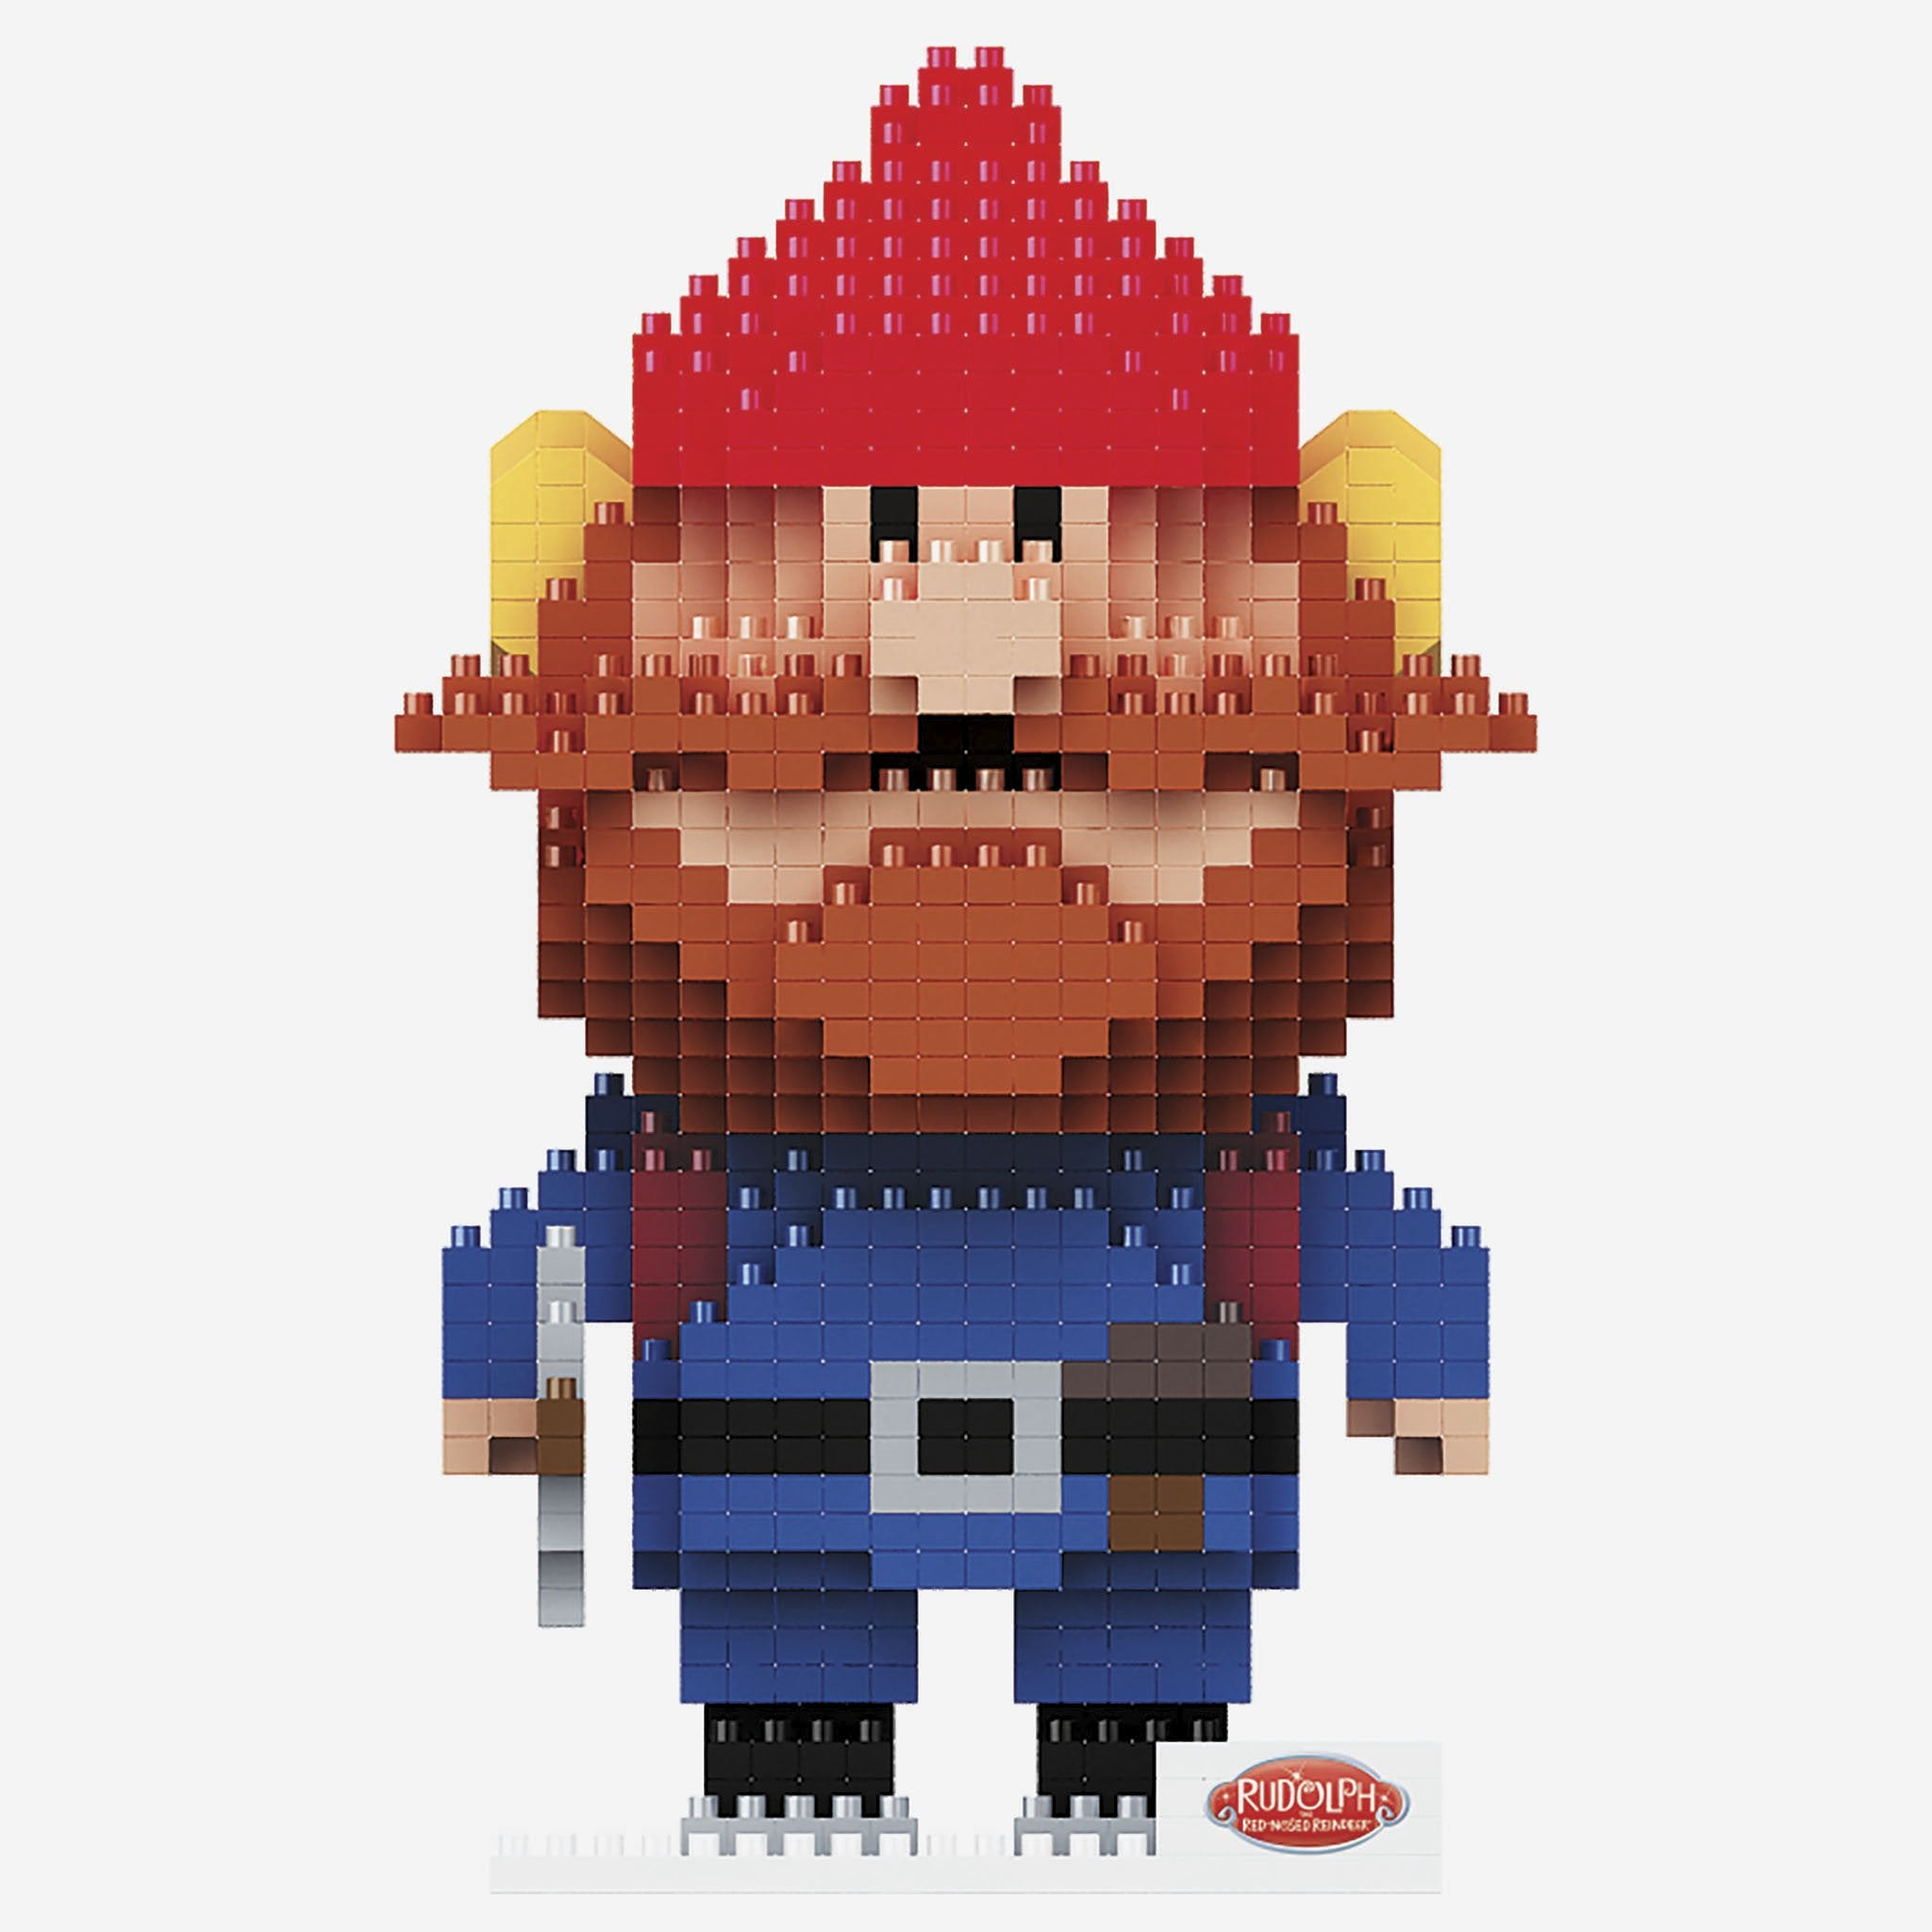 Yukon Cornelius Rudolph the Red Nosed Reindeer BRXLZ Character